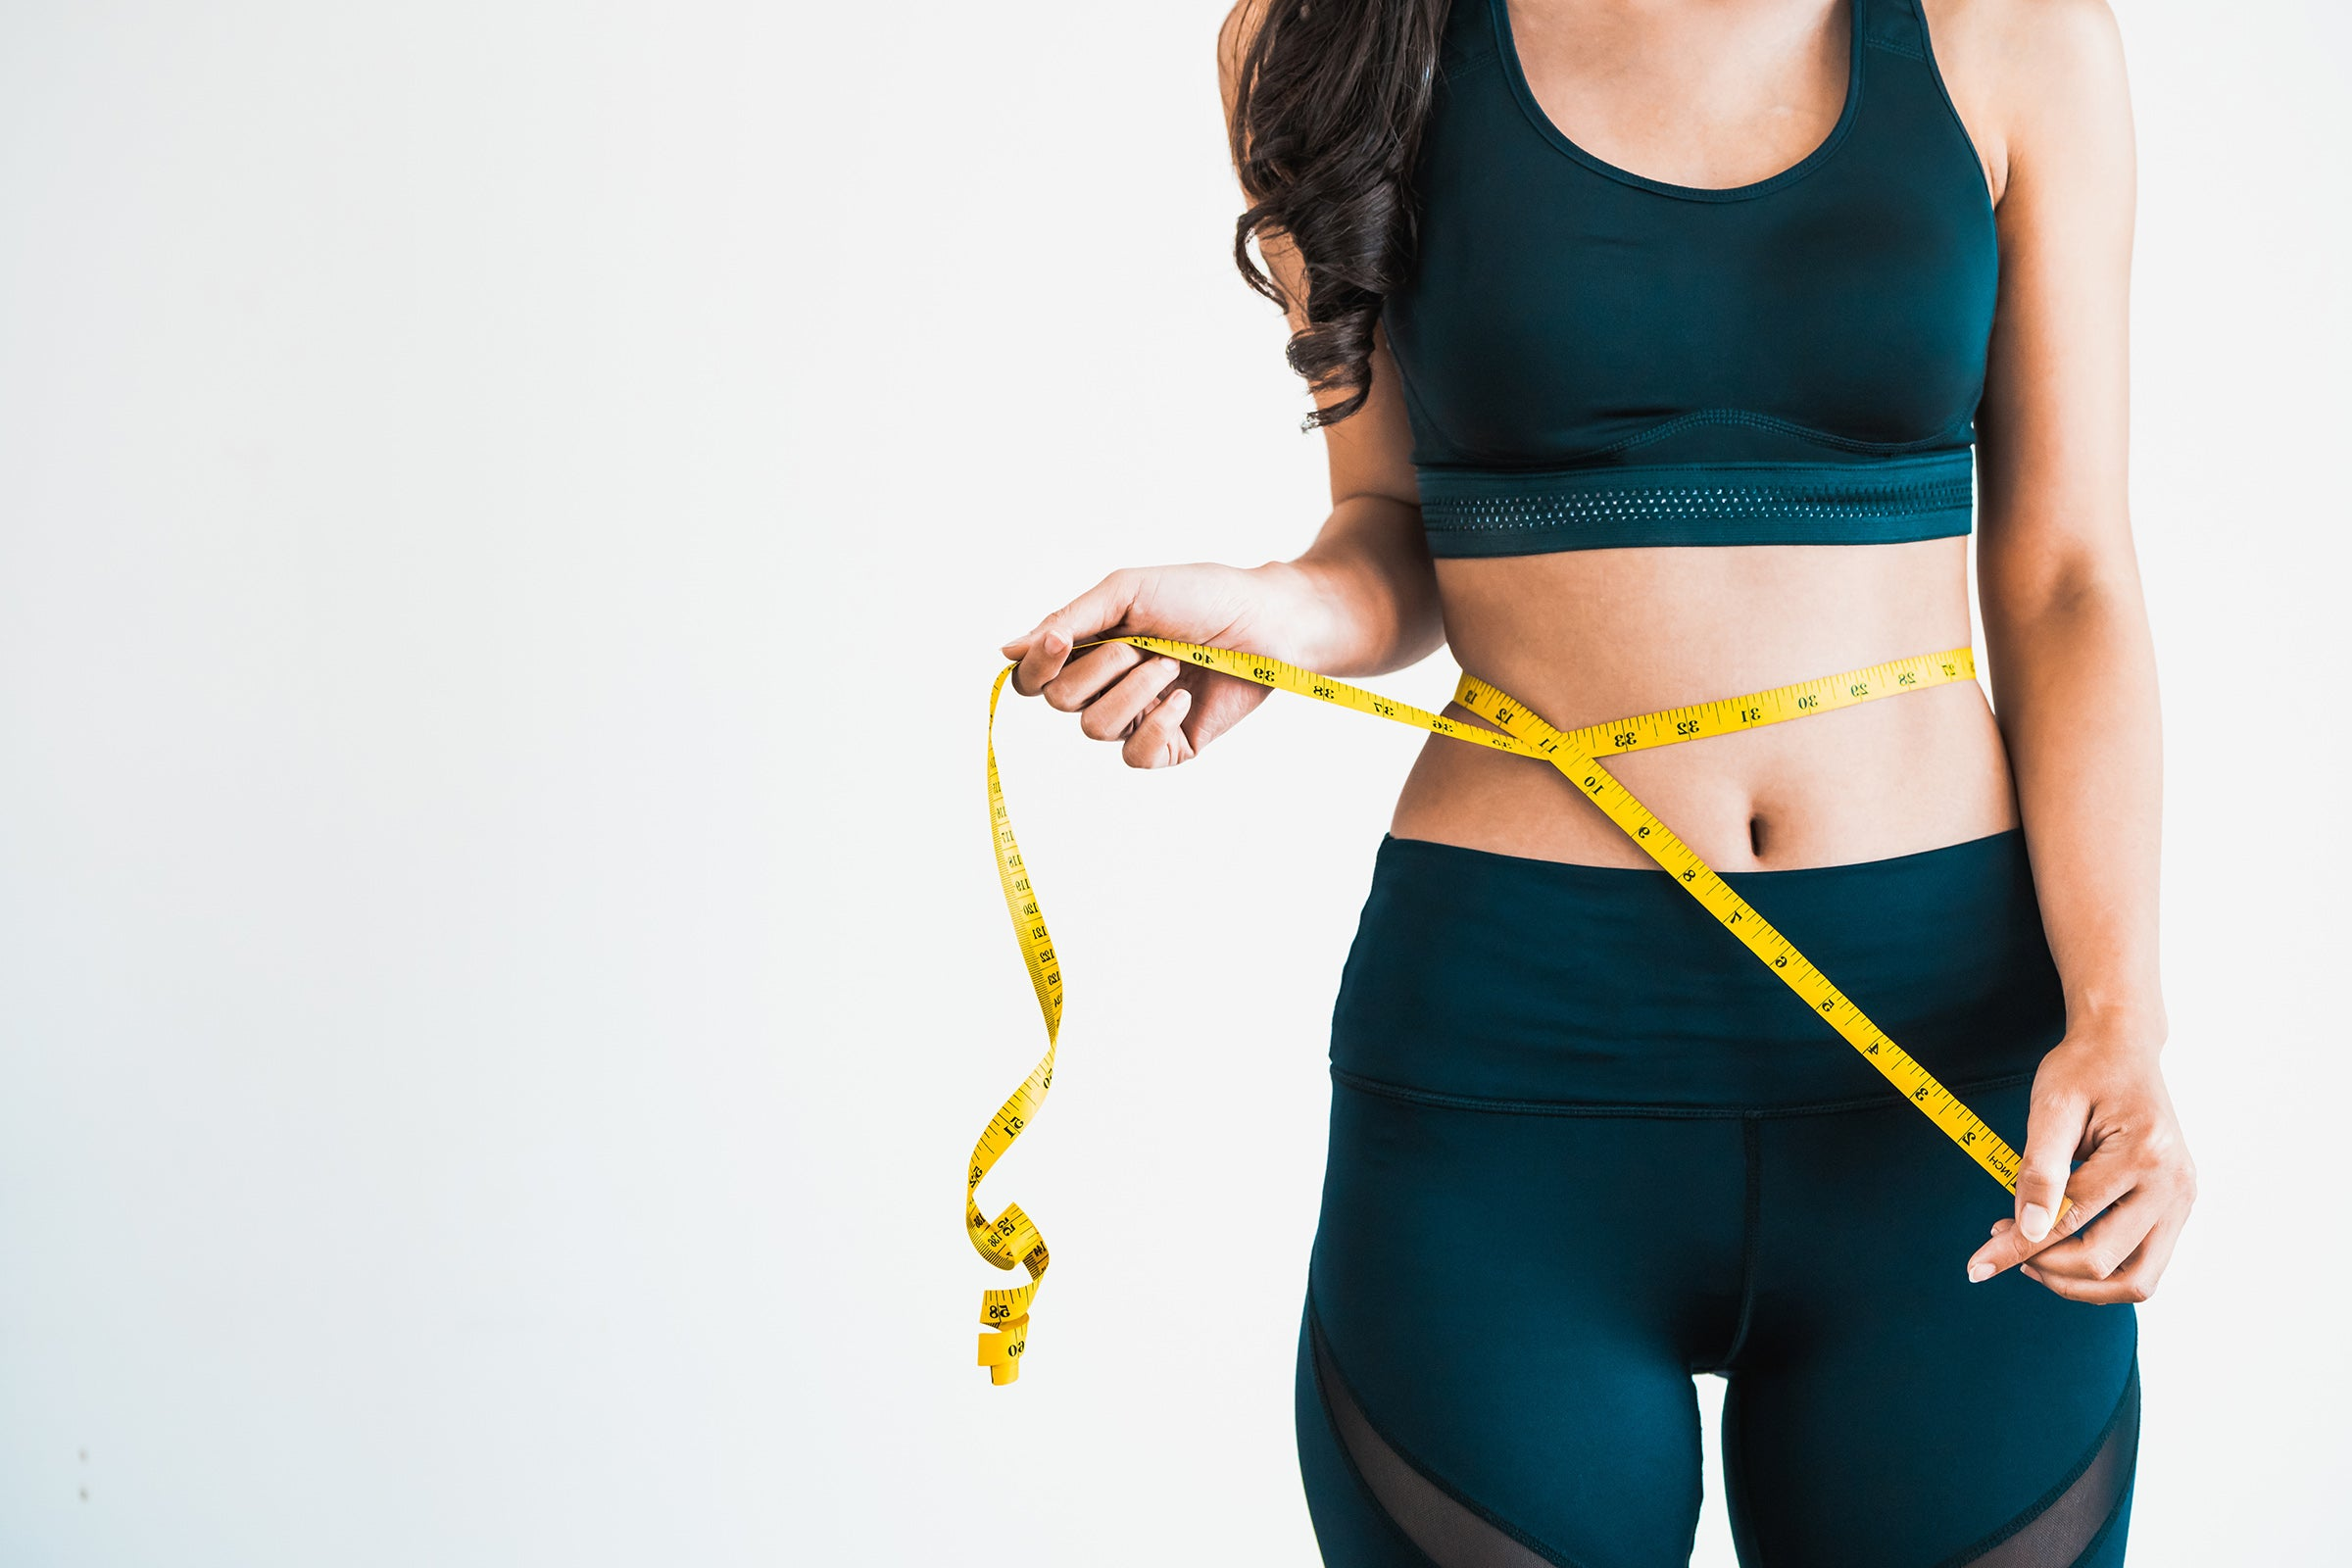 Overall fat loss, not mythical spot reduction, is the path to a leaner body.